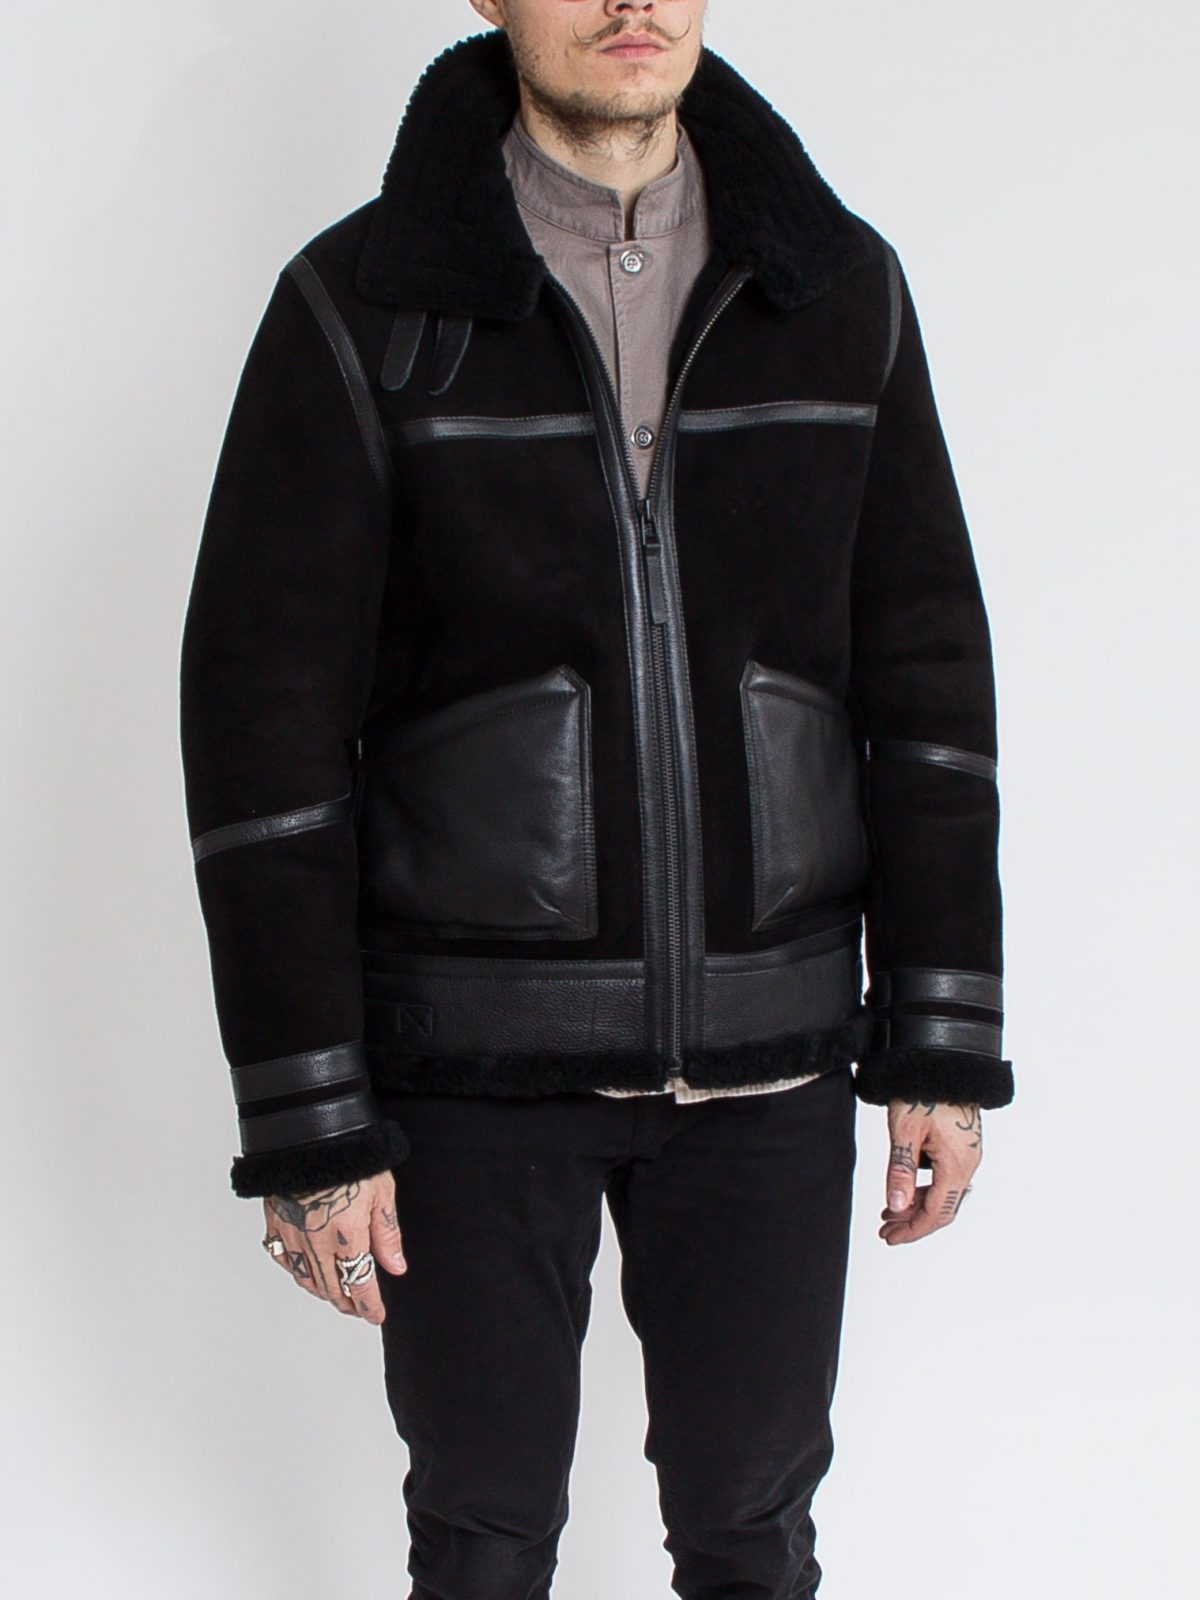 Mens-BlackLSoft-Leather-Shearling-Jacket-Featured-1-1-1-1-1.jpg